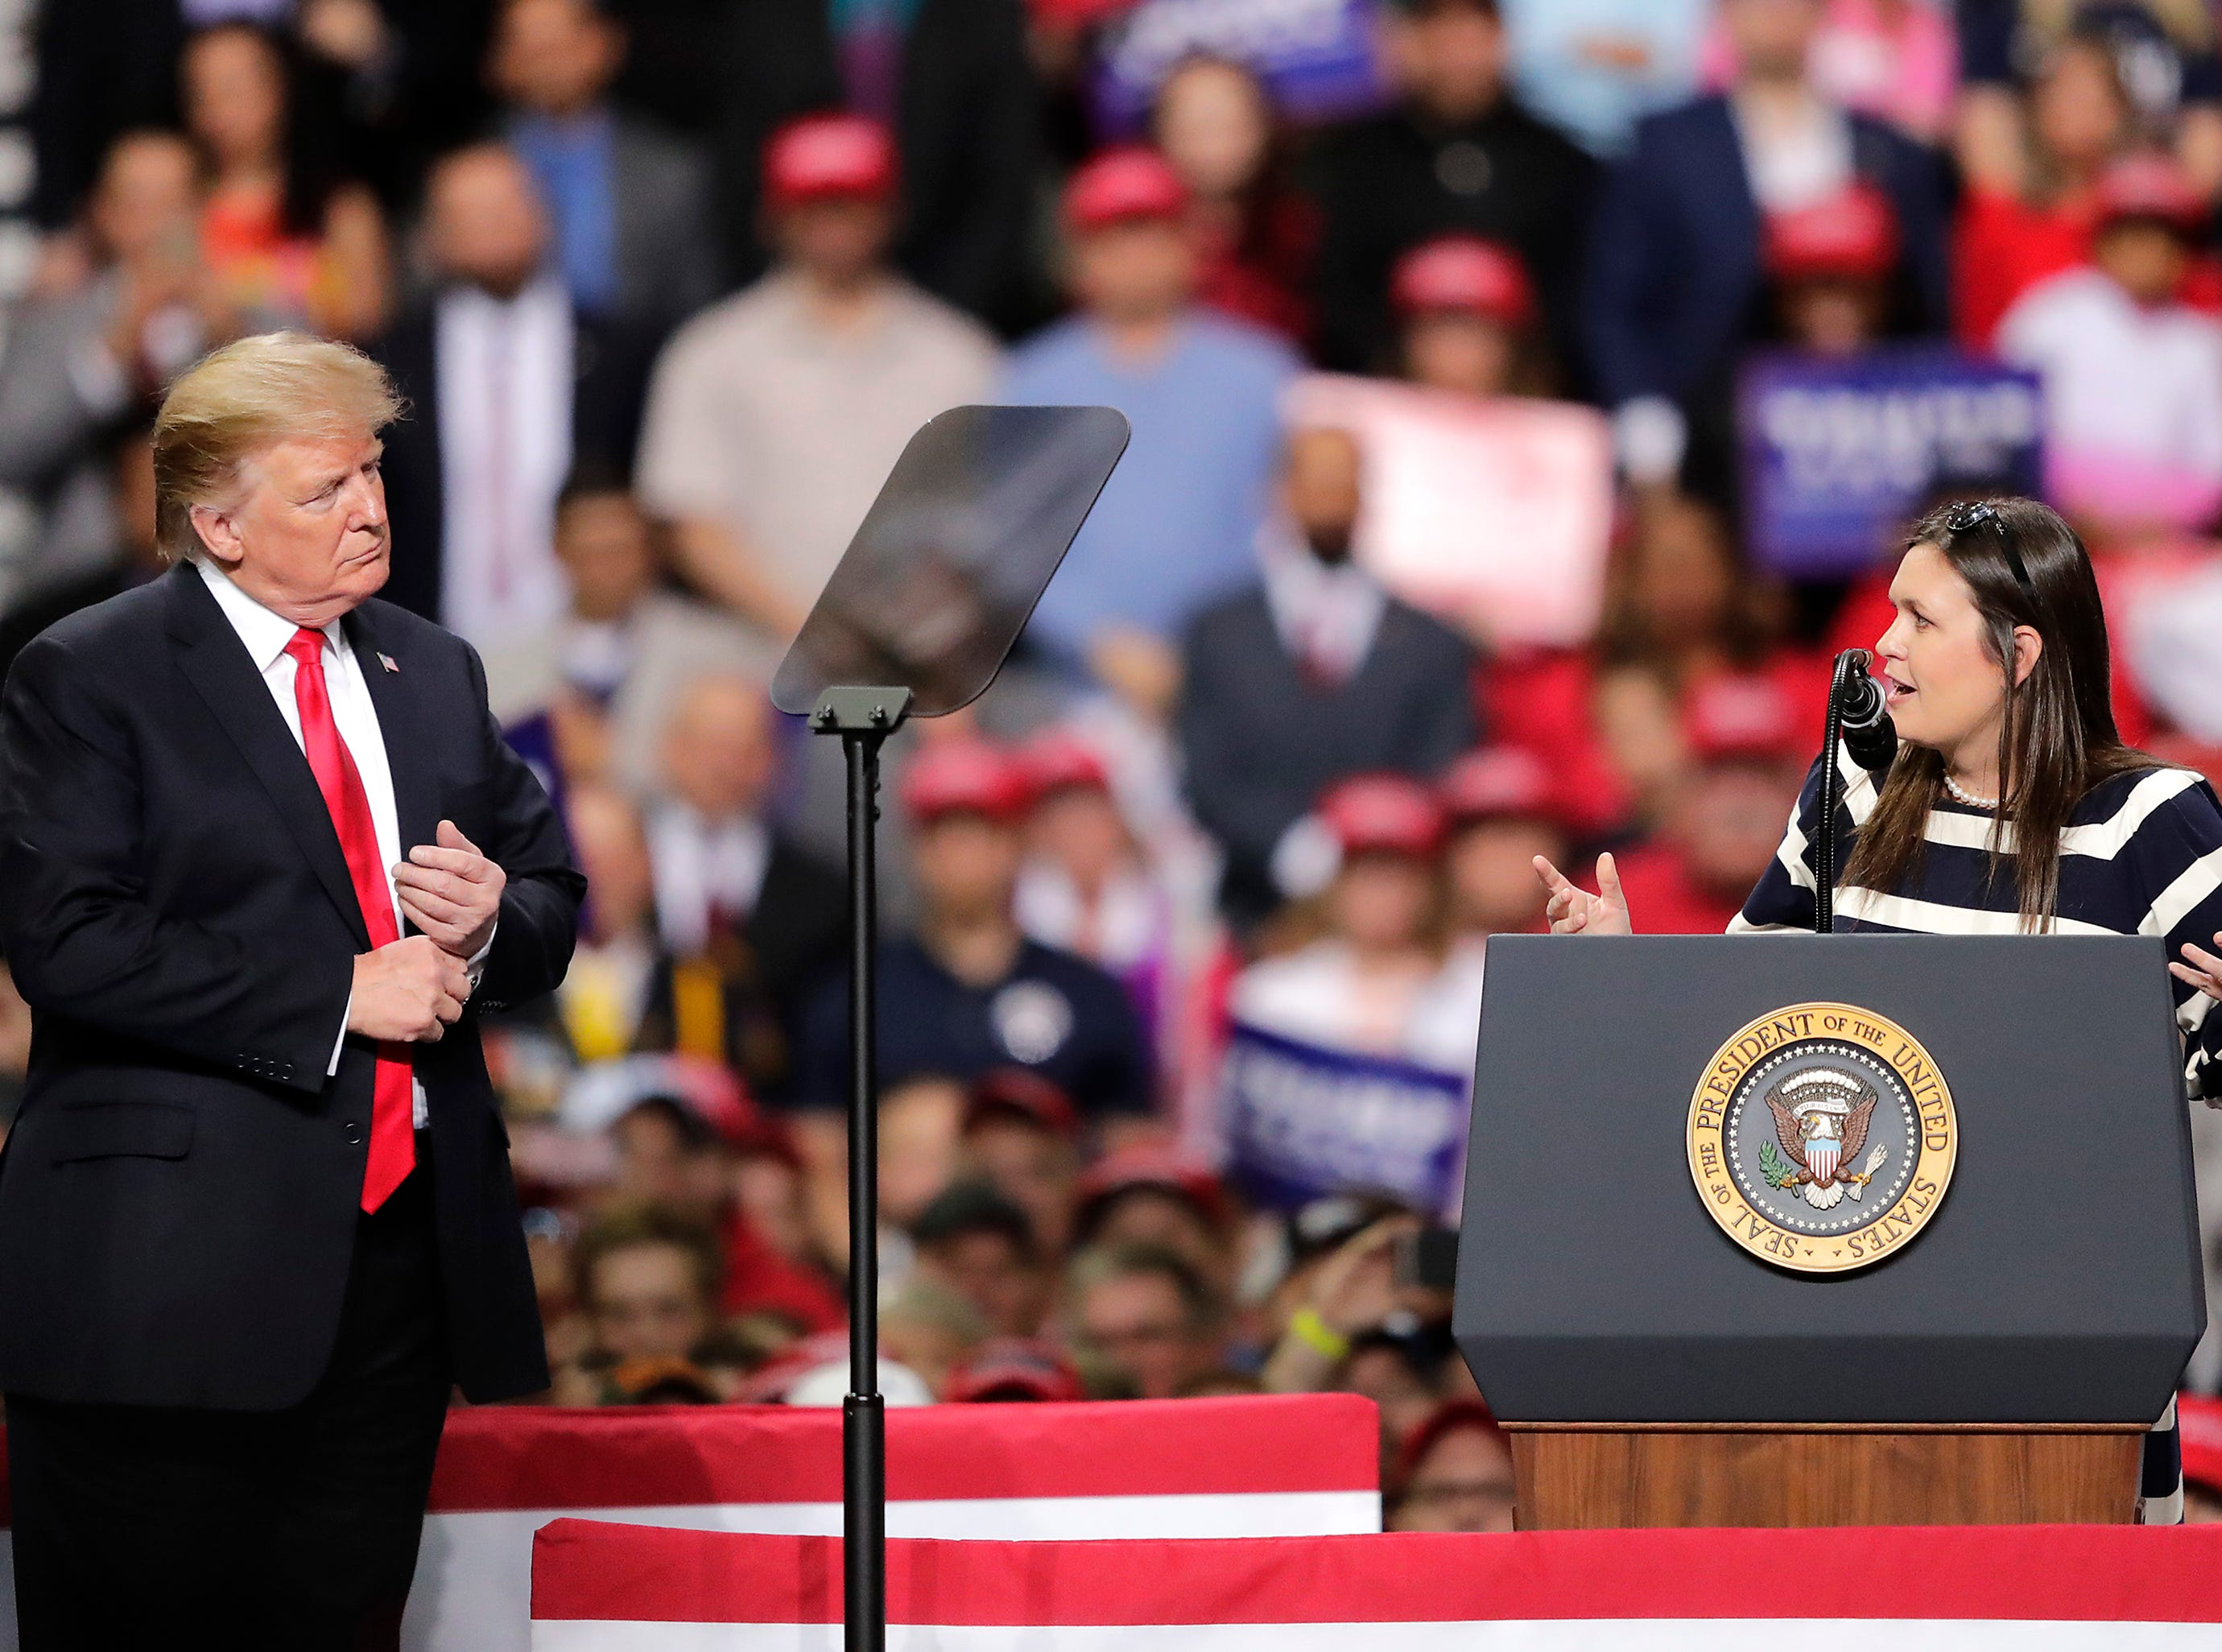 White House Press Secretary Sarah Sanders takes the stage with President Donald J. Trump during a Make America Great Again Rally on Saturday, April 27, 2019, at the Resch Center in Green Bay, Wis.